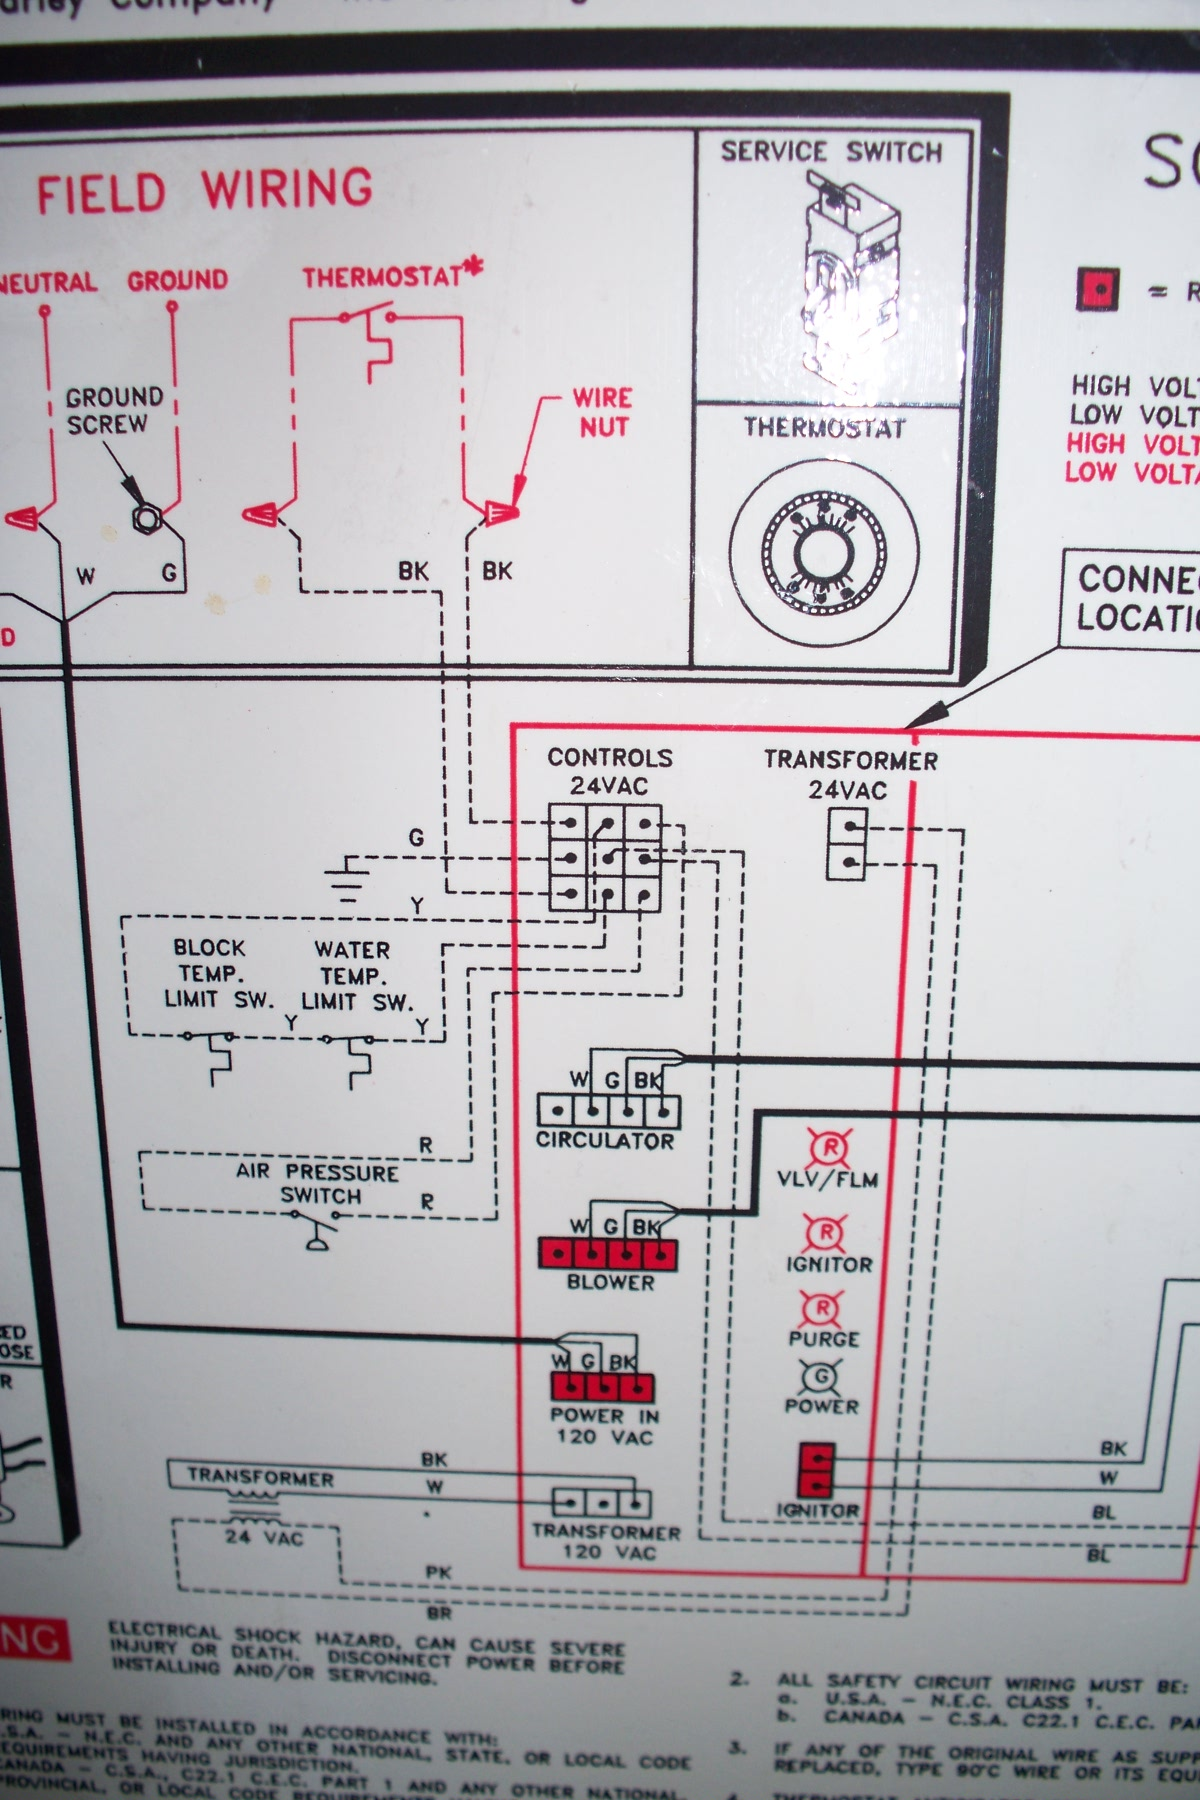 2014 01 12_010619_100_3141 i have a weil mcclain gv5 series 2 boiler with an amtrol amtrol boilermate wiring diagram at virtualis.co